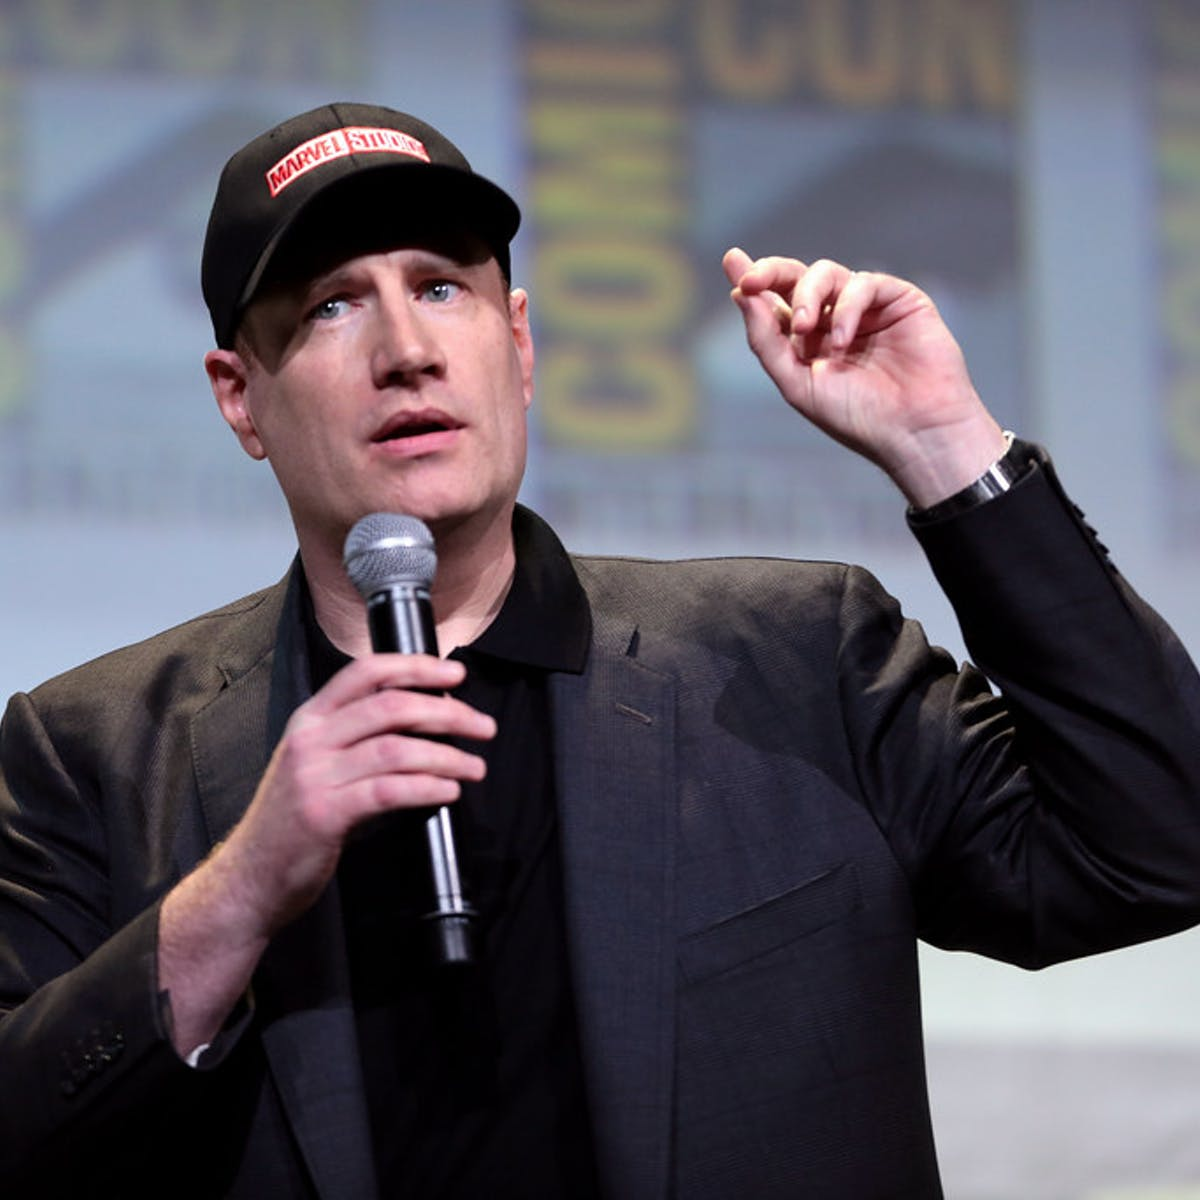 Kevin Feige 'Star Wars' movies could be more like Star Trek than Marvel